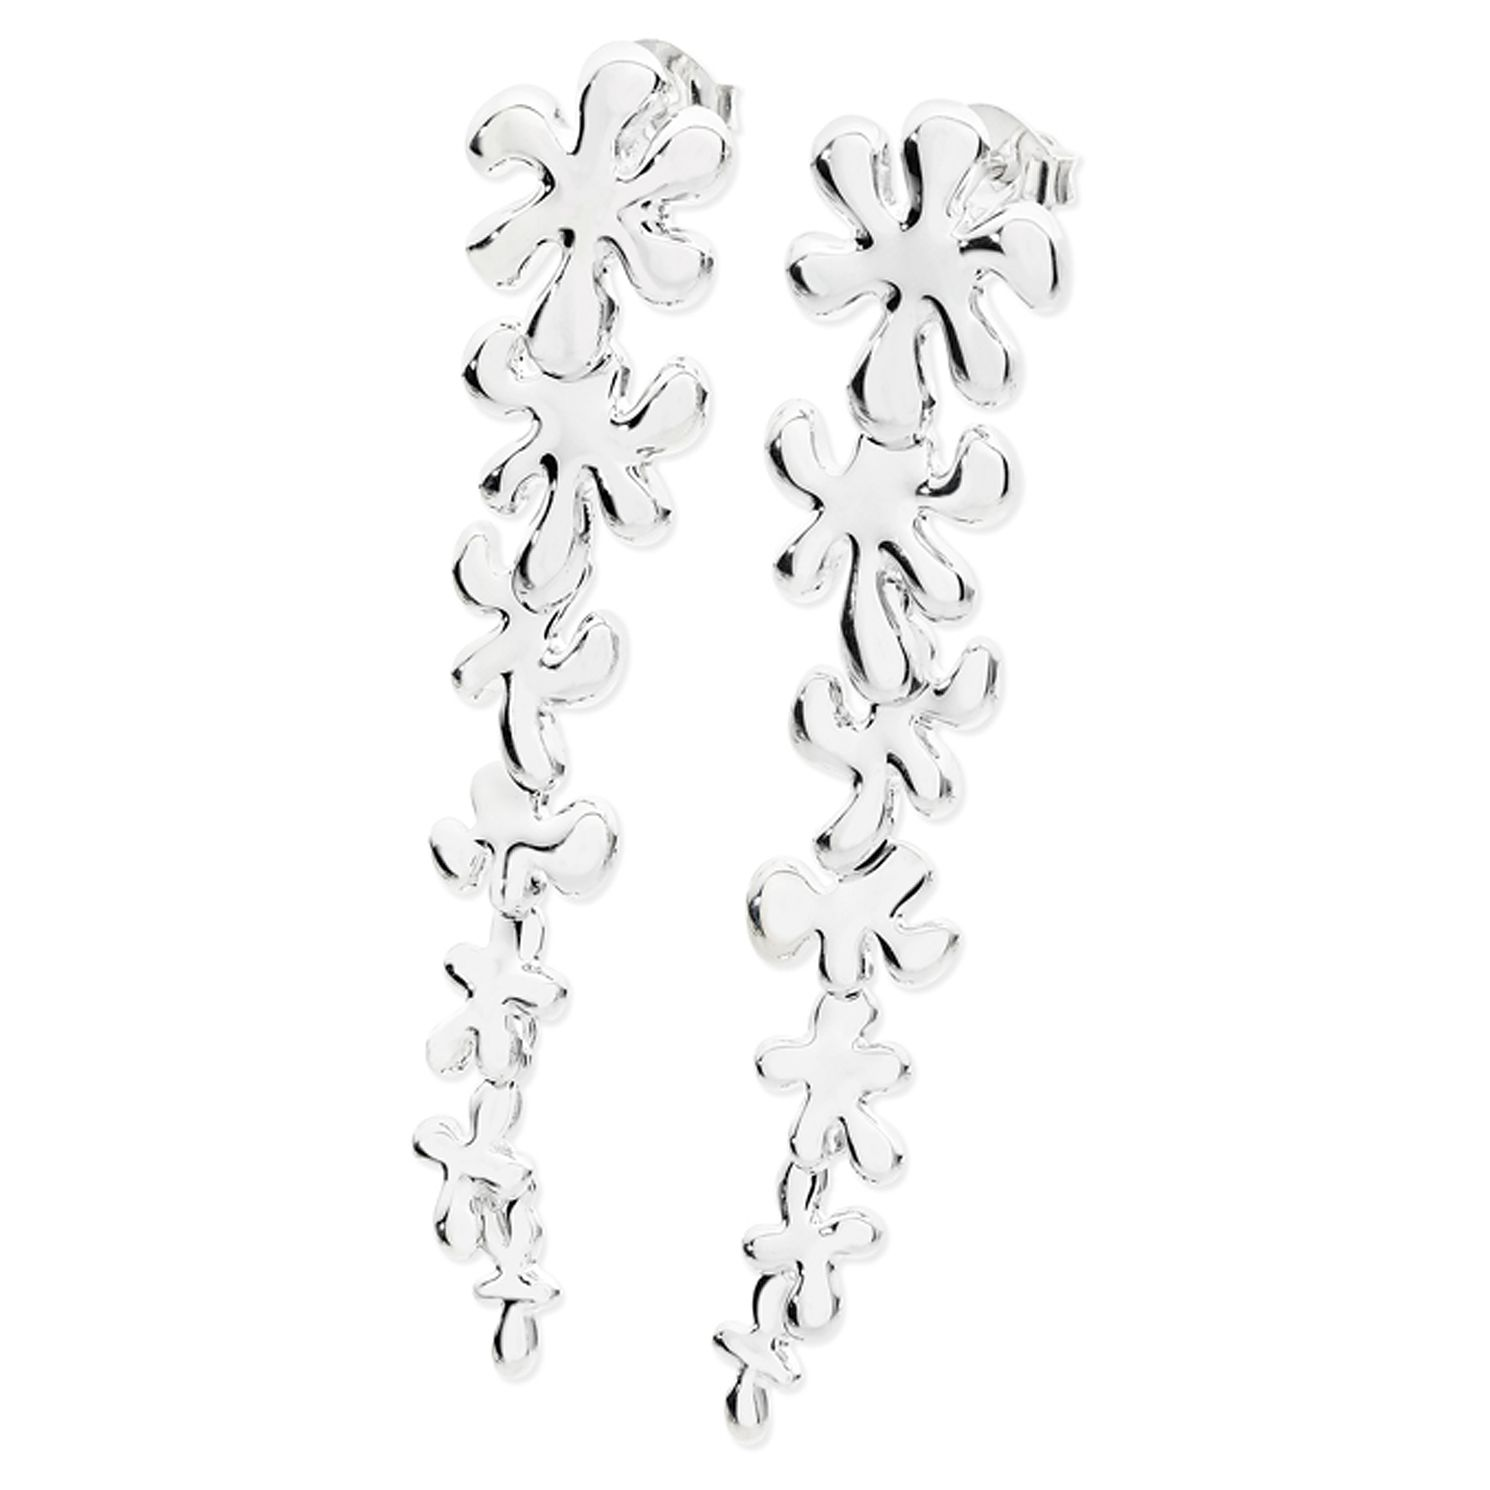 Lucy Quartermaine Silver 925 Long Taper Splash Earrings - Product number 4420020